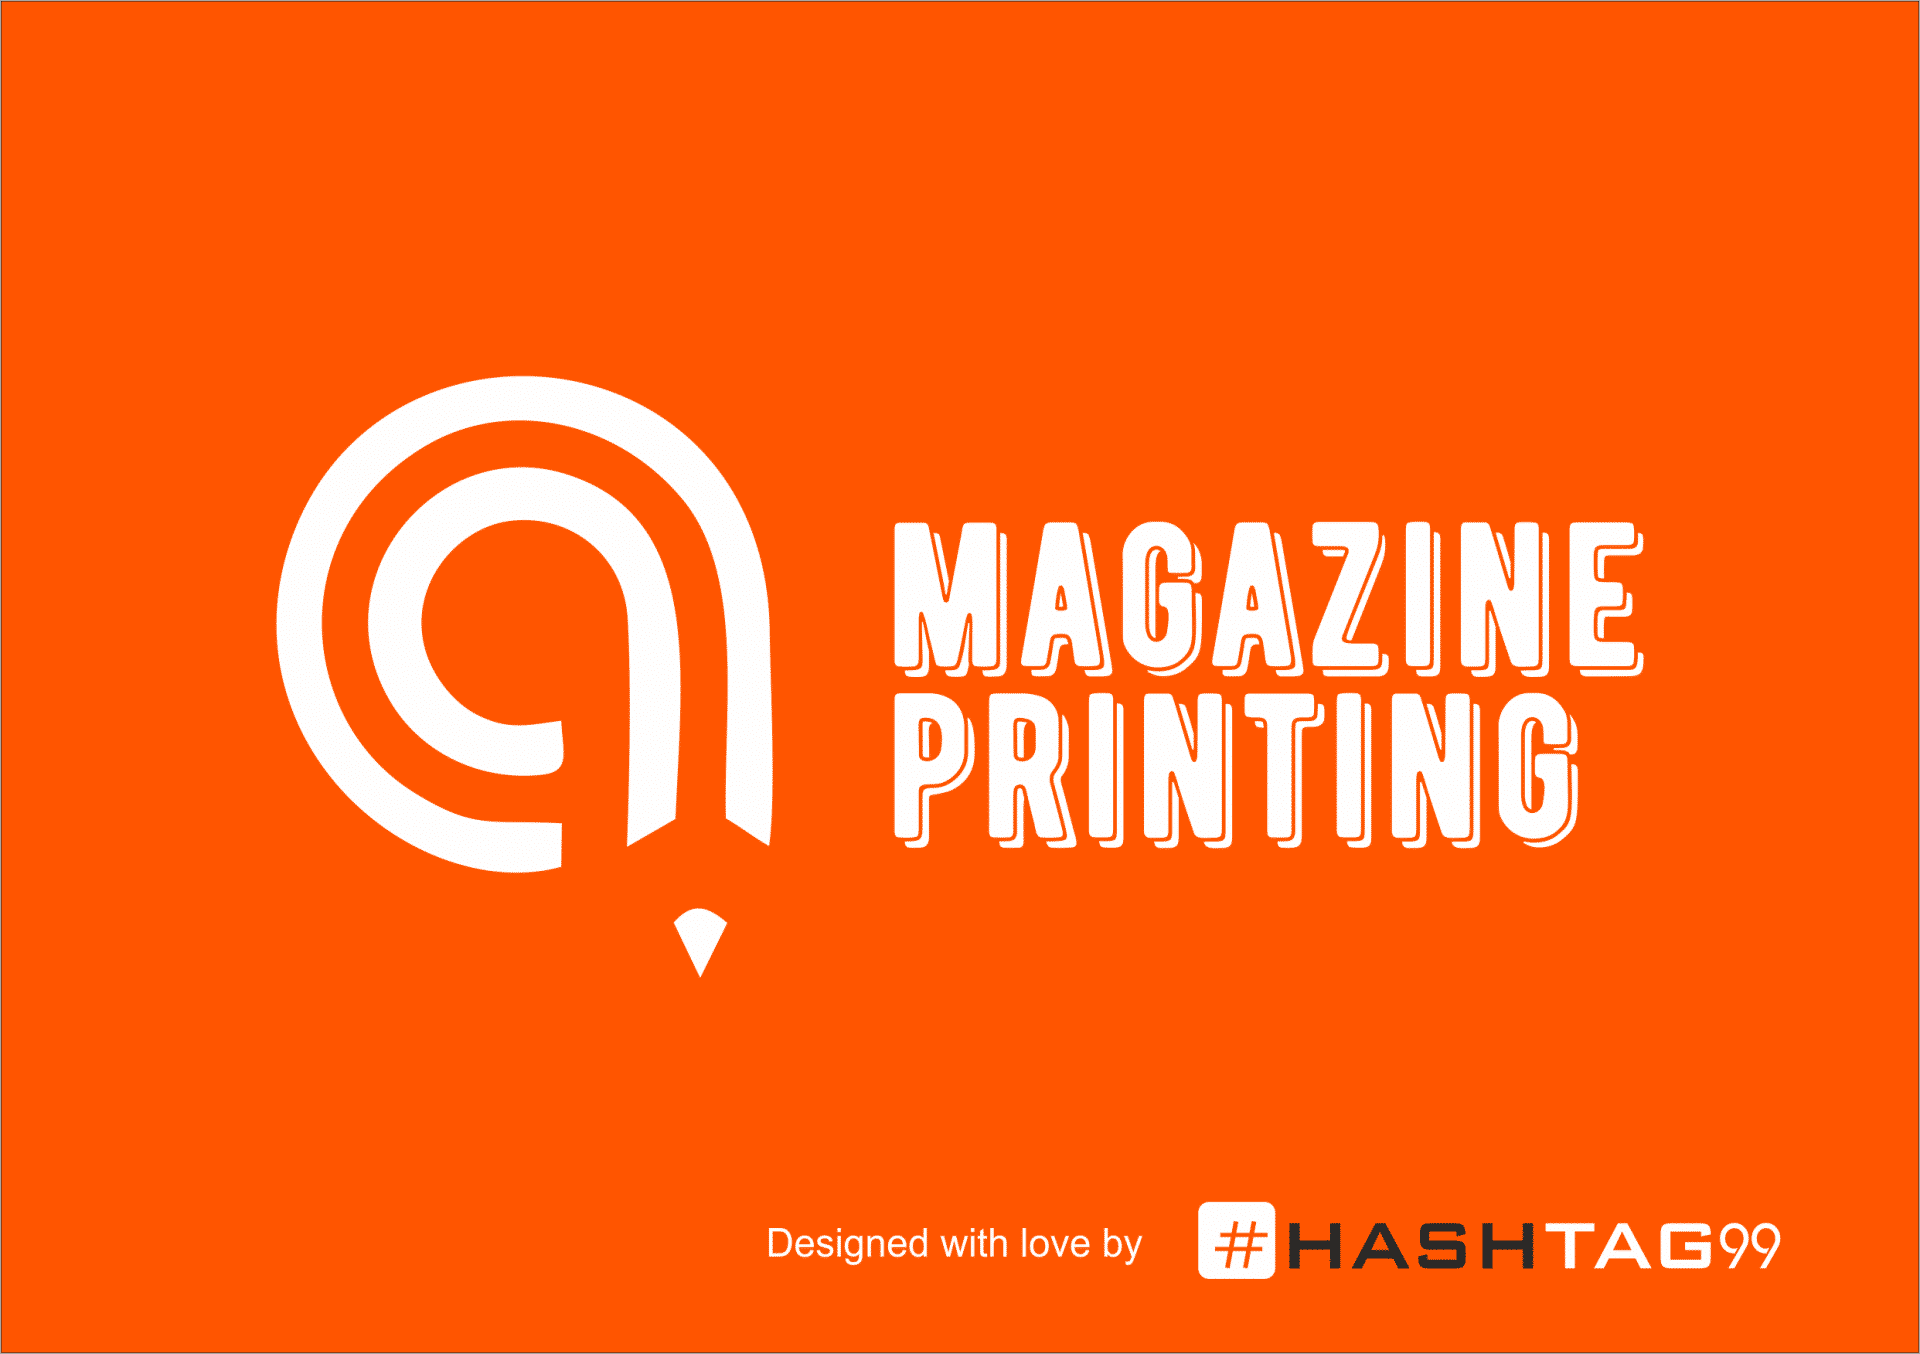 Magazine printing logo design orange